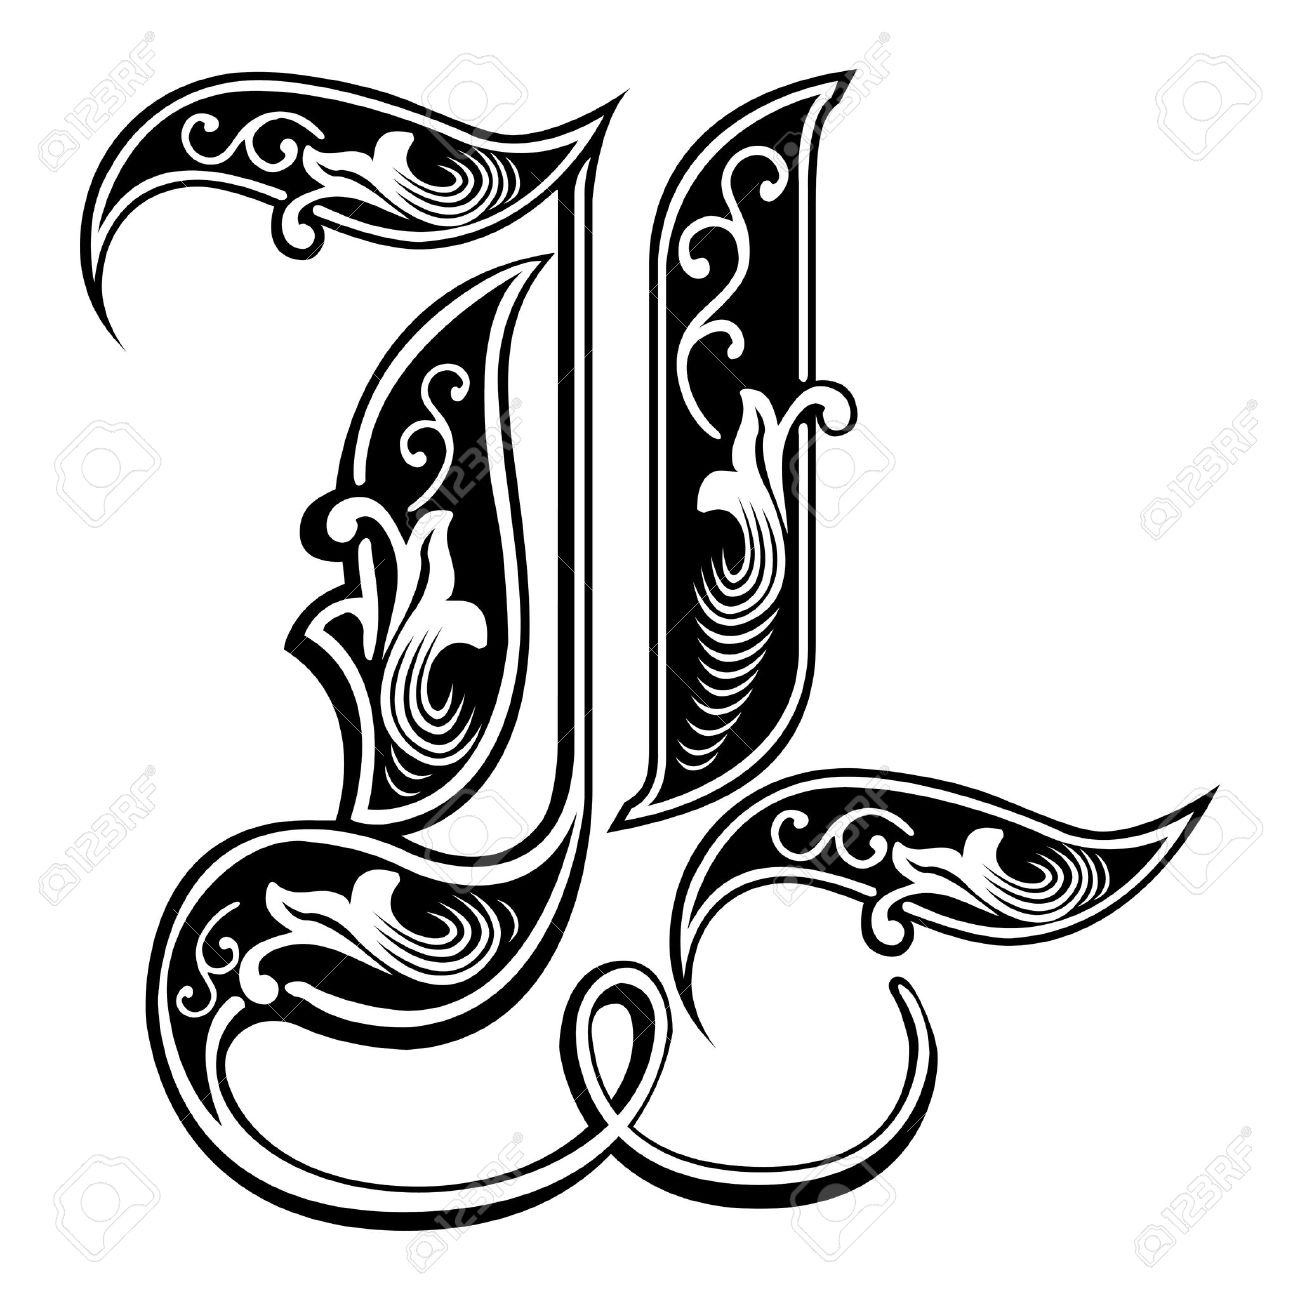 Decorative Letter L Clipart  Alternative Clipart Design